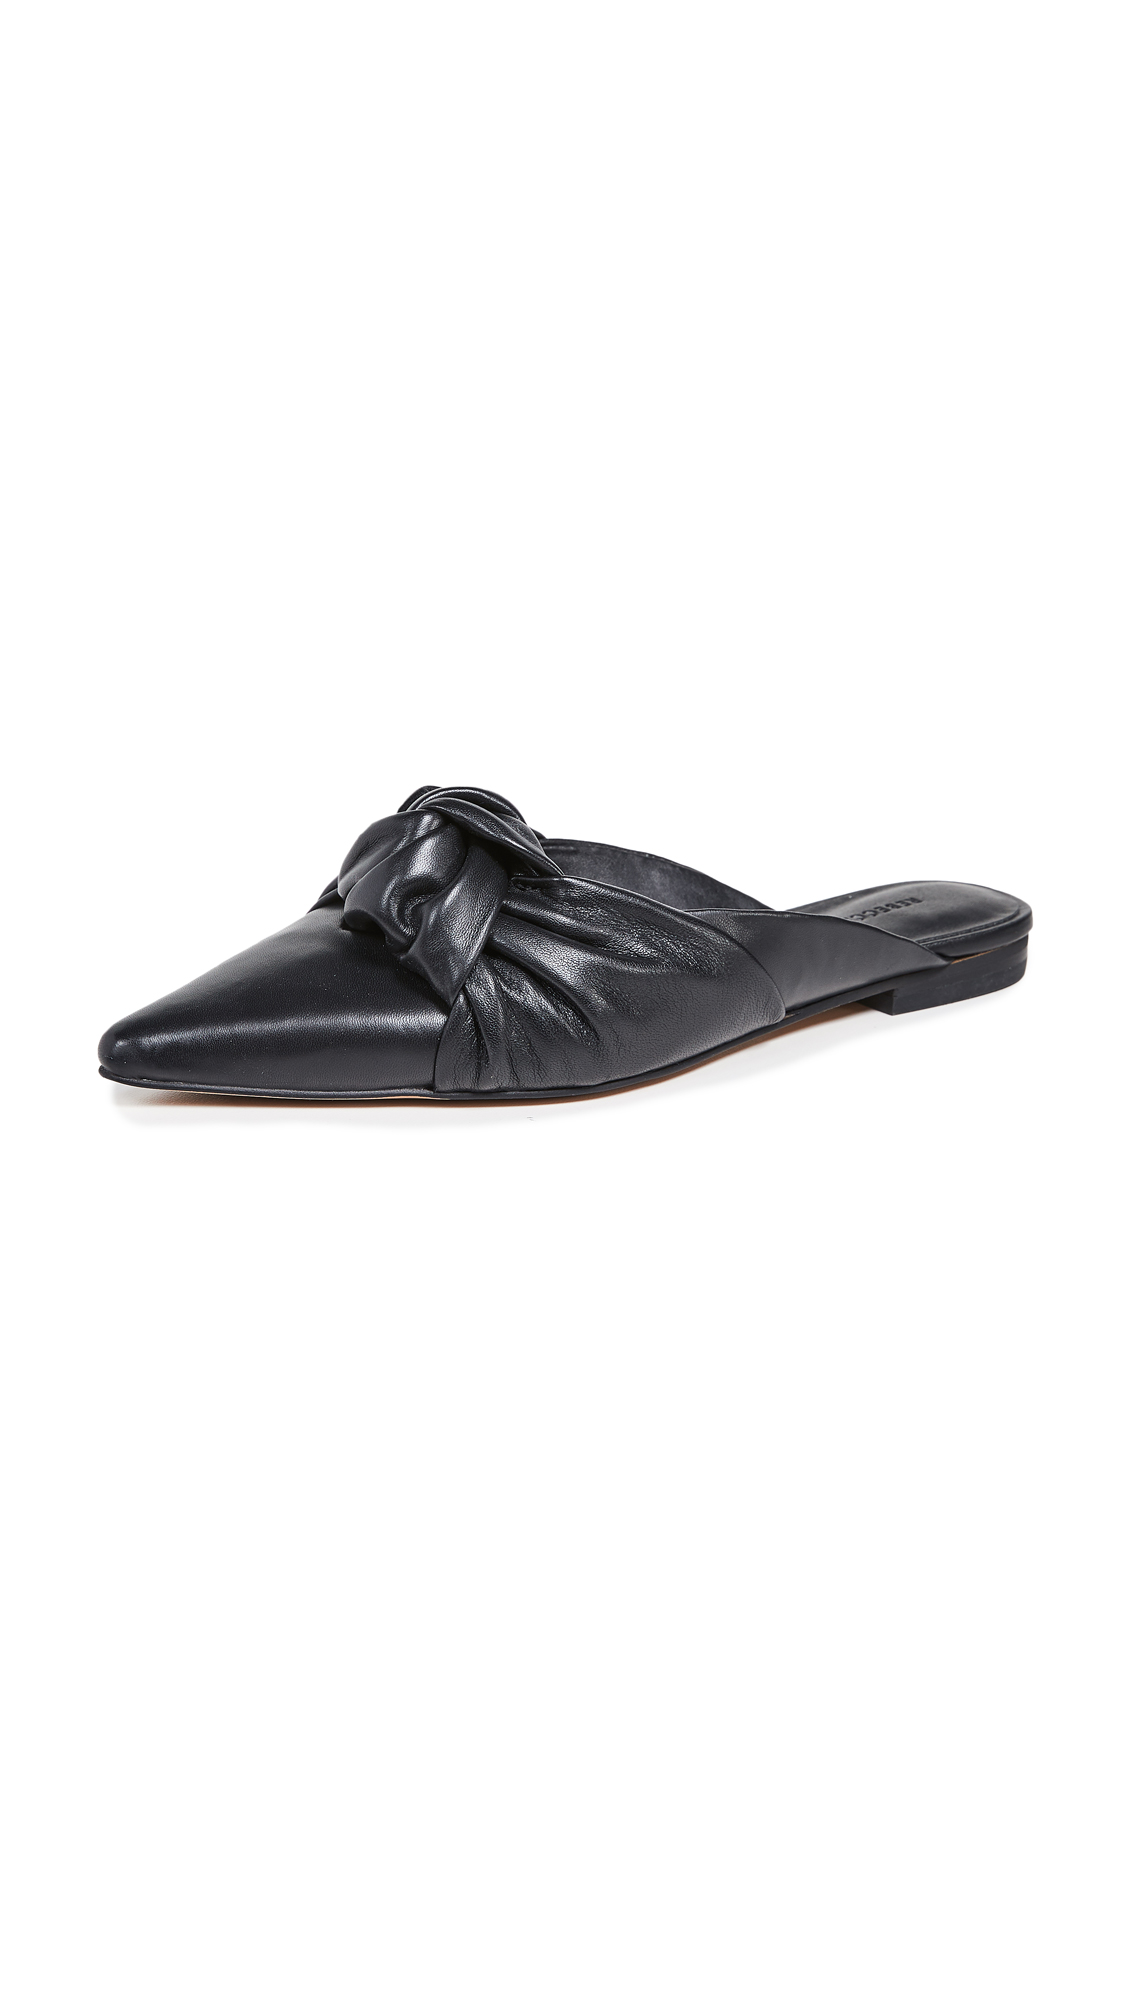 Rebecca Minkoff Coretta Point Toe Mules - Black